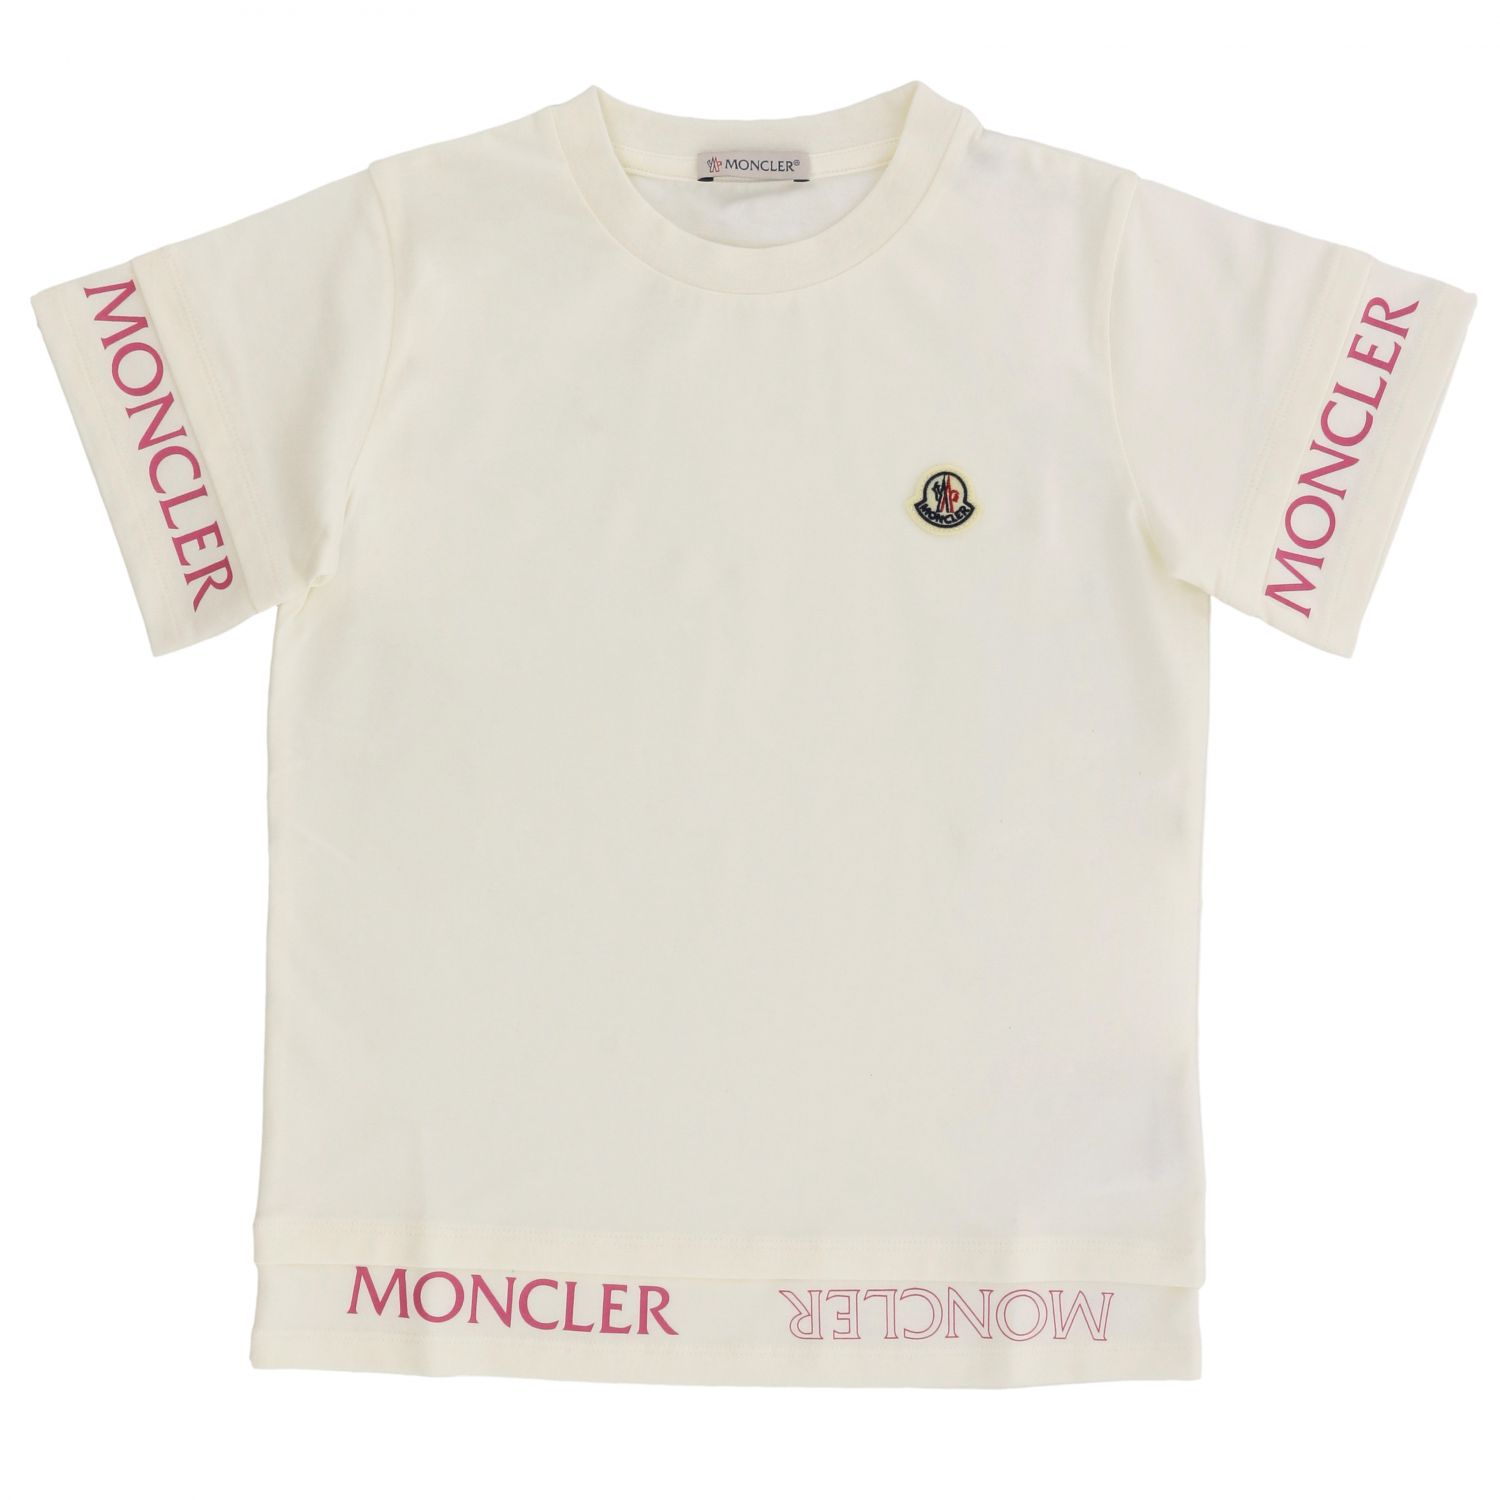 Moncler short-sleeved T-shirt with logo white 1